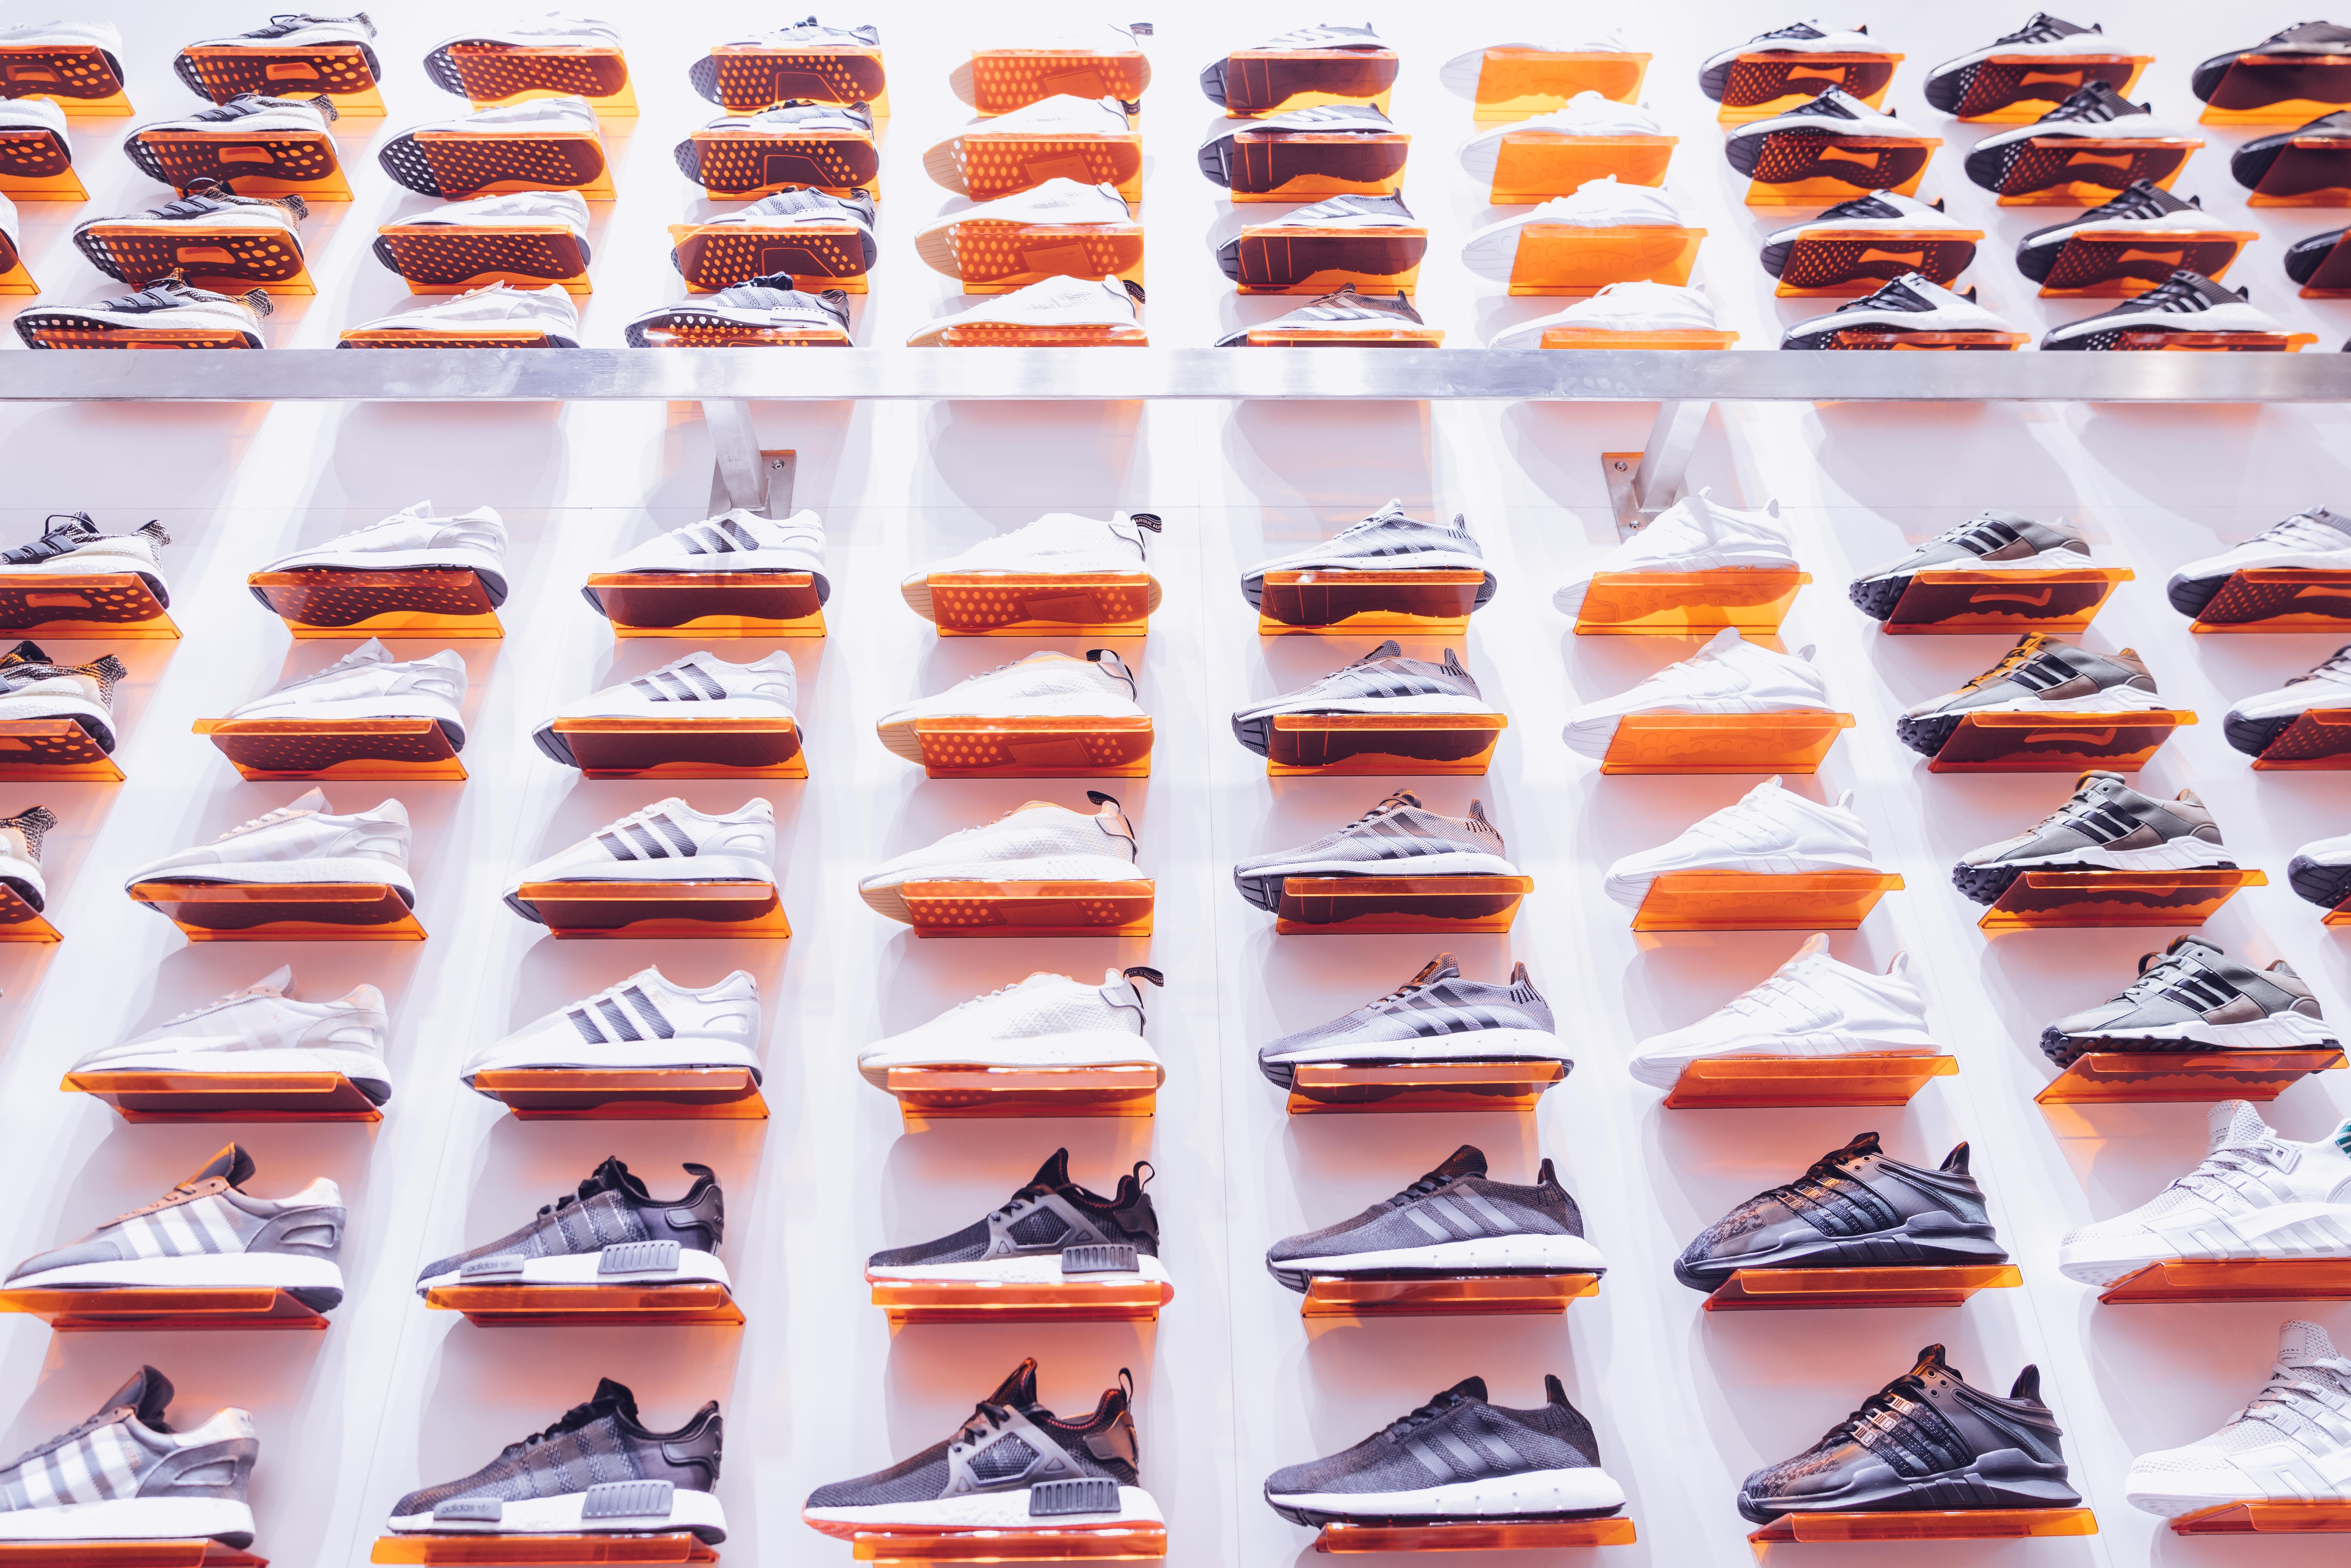 500 Sneakers Pictures Hd Download Free Images On Unsplash